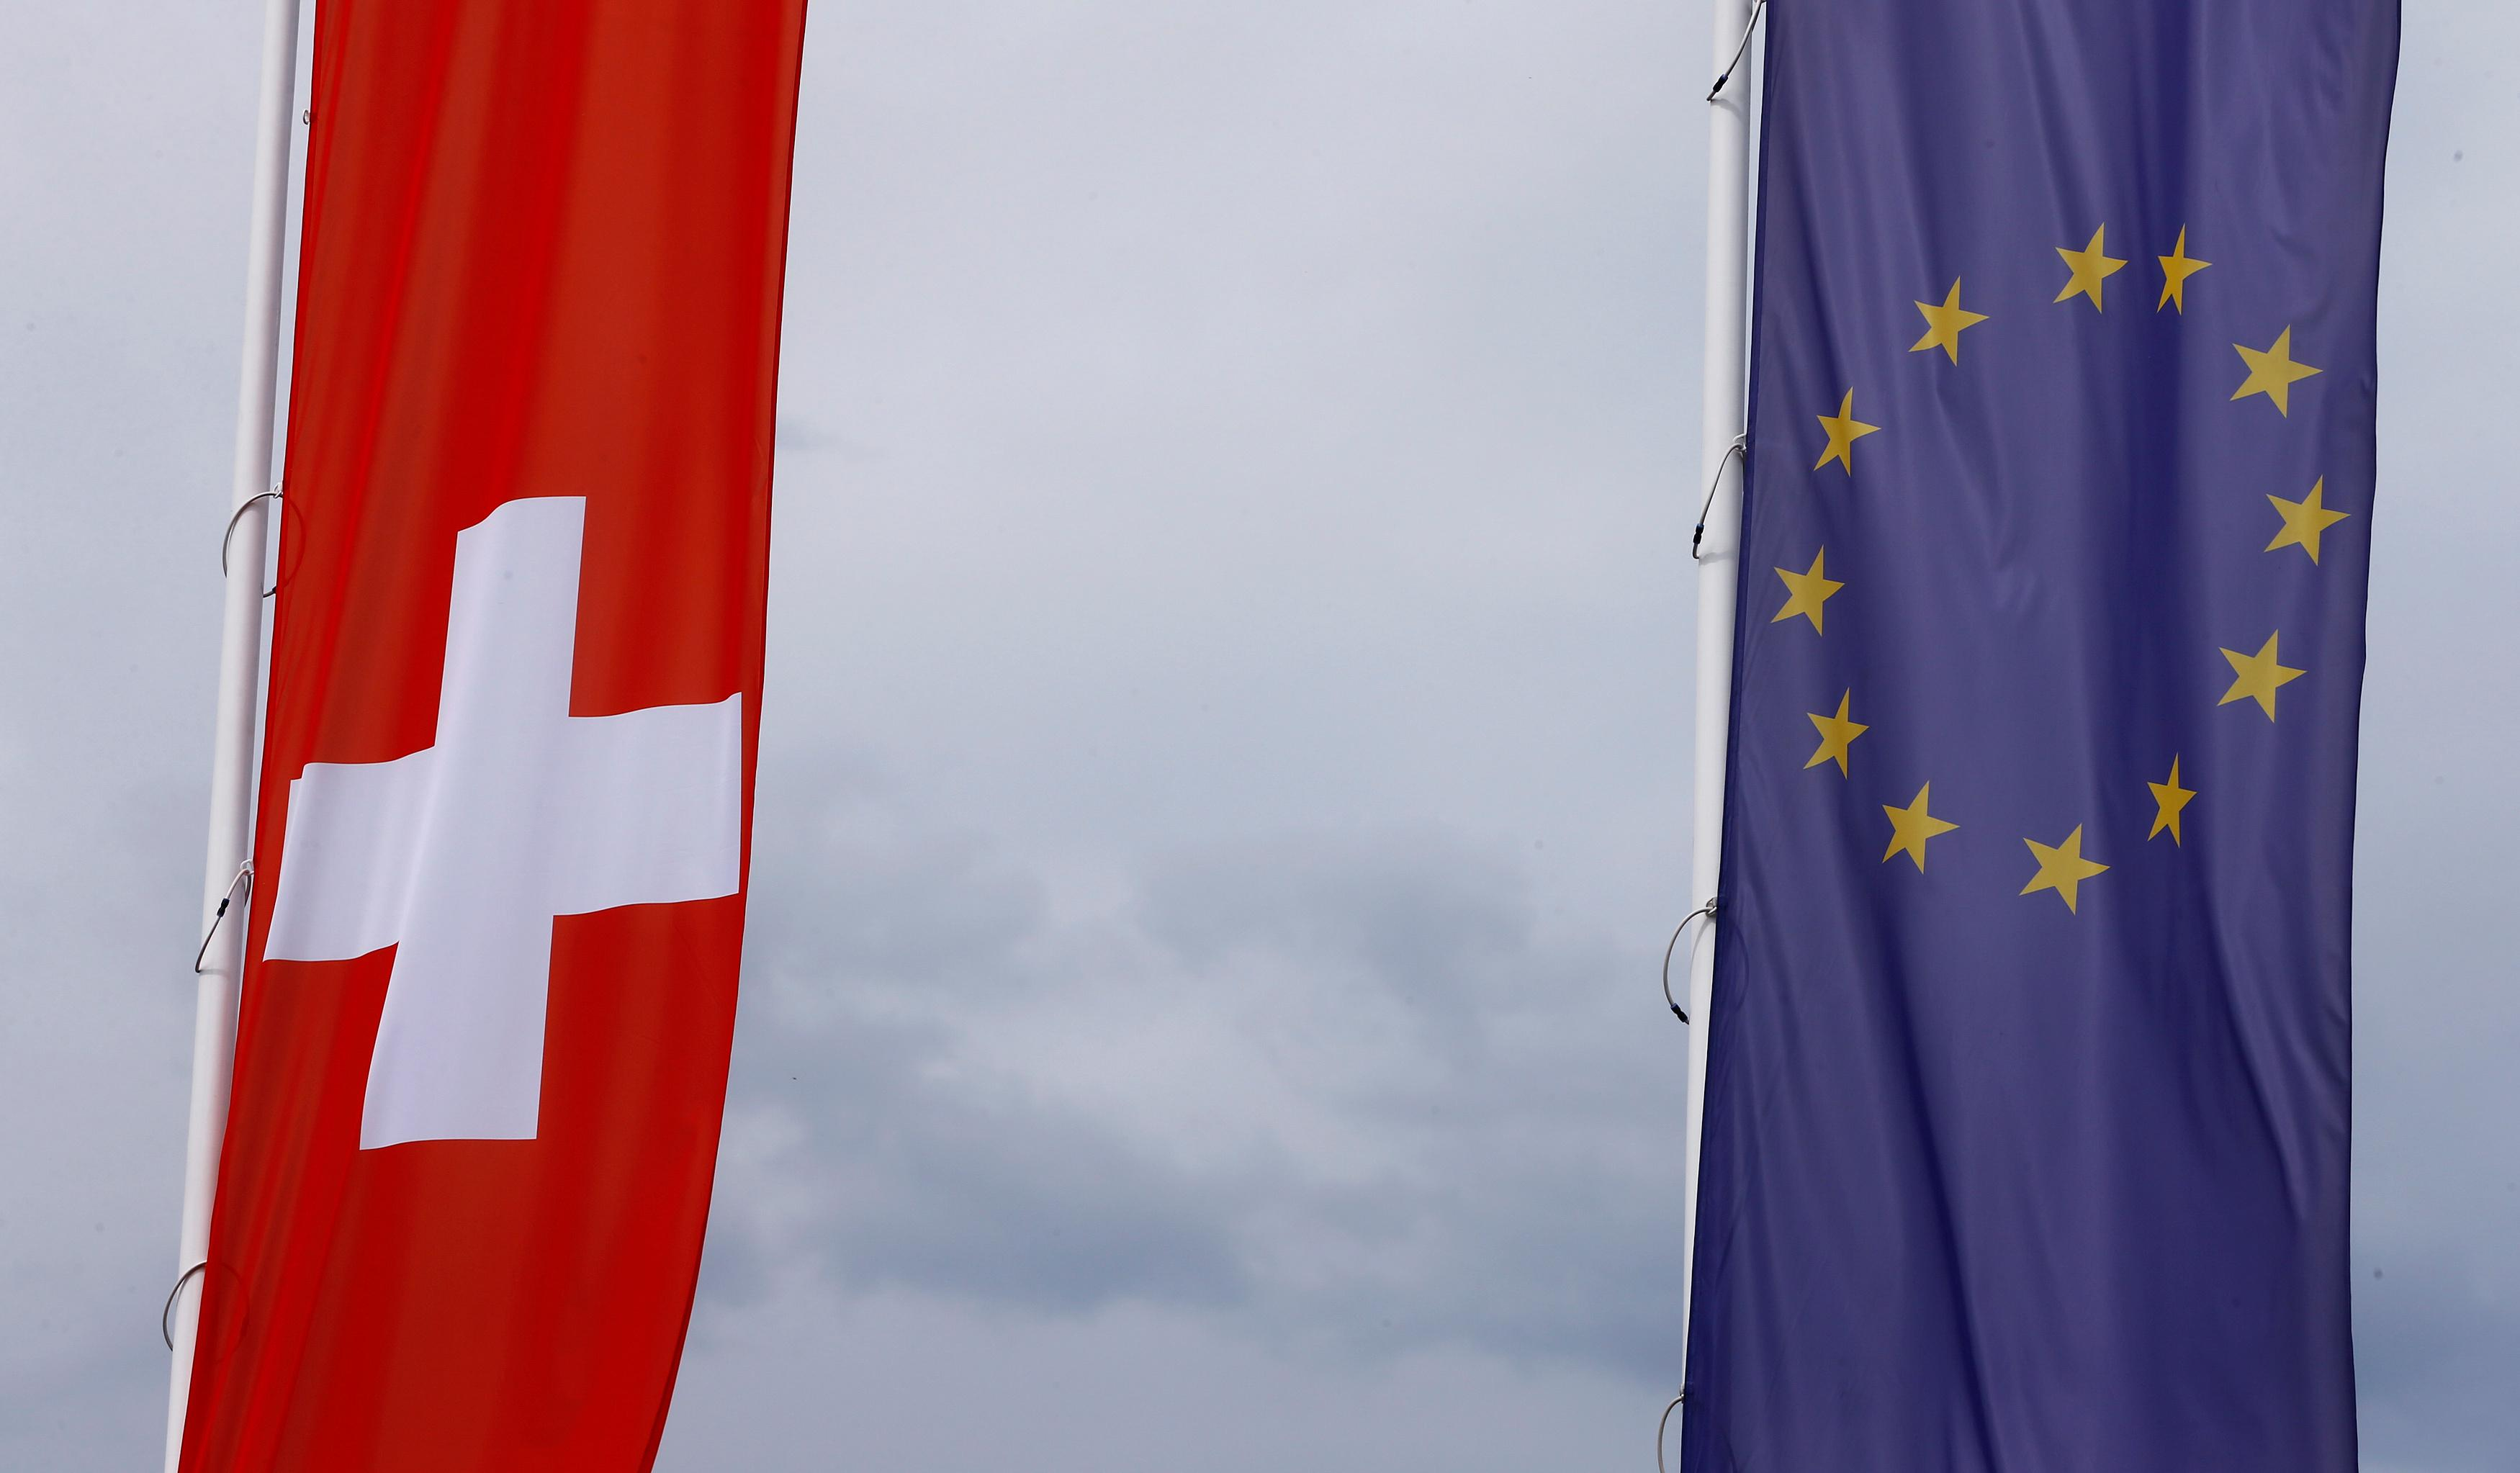 Swiss immigration rises again as ties with EU face test